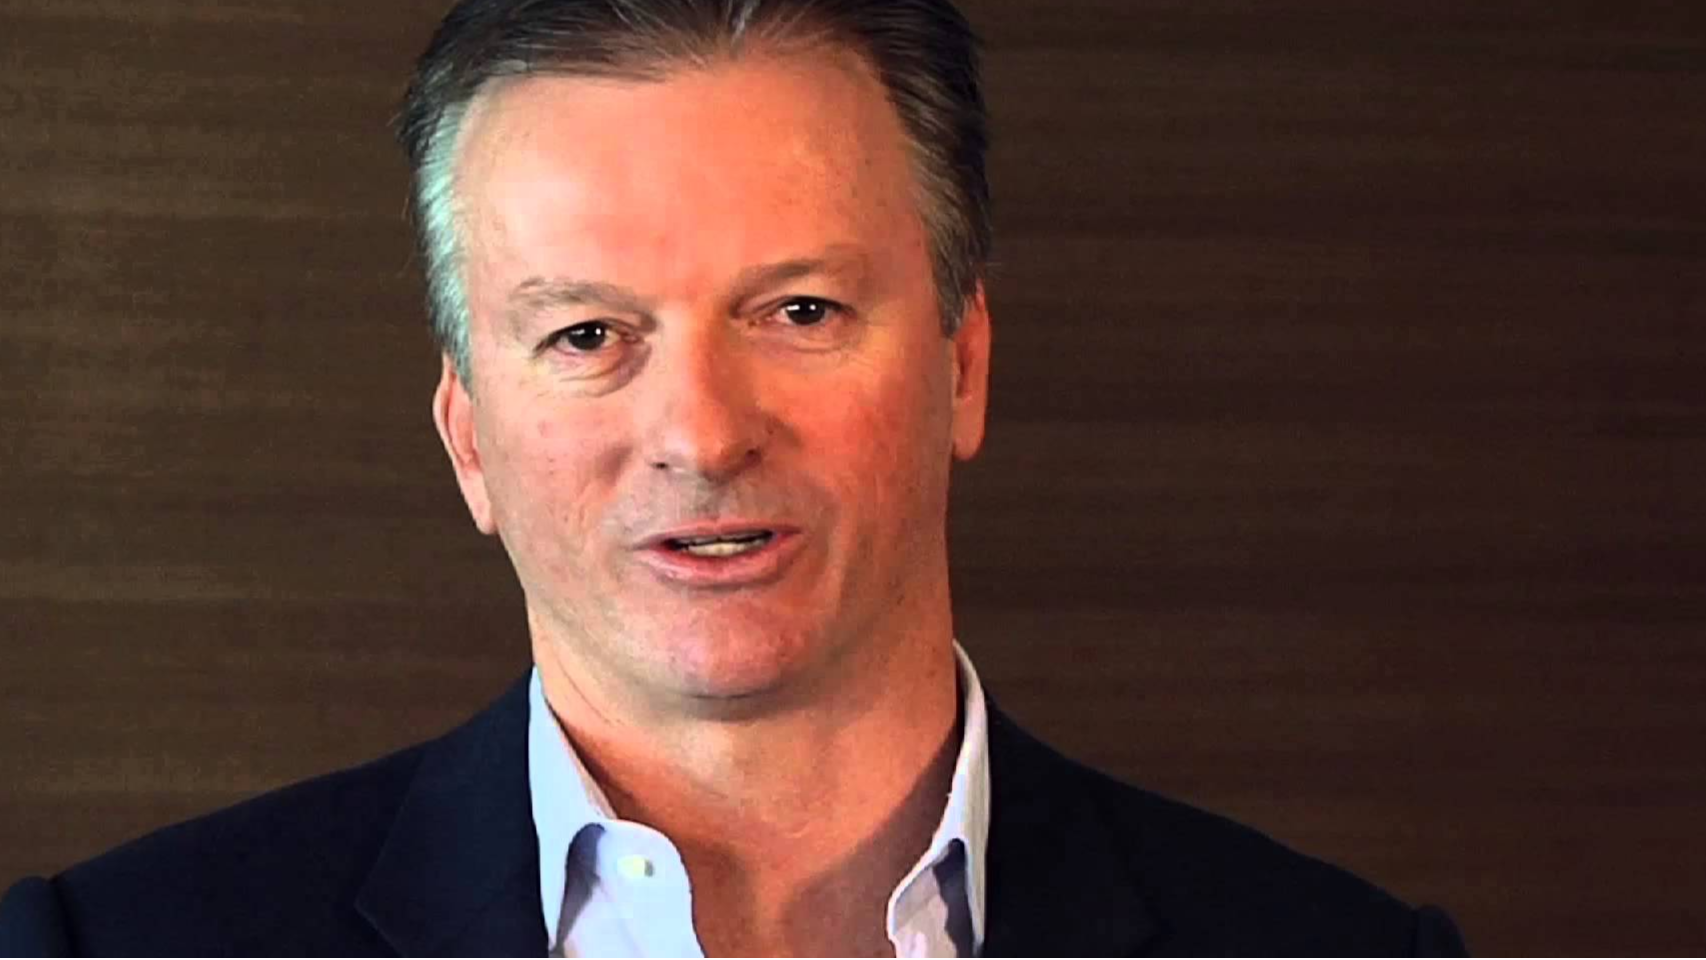 Steve Waugh advices Virat Kohli to control his emotions on the field